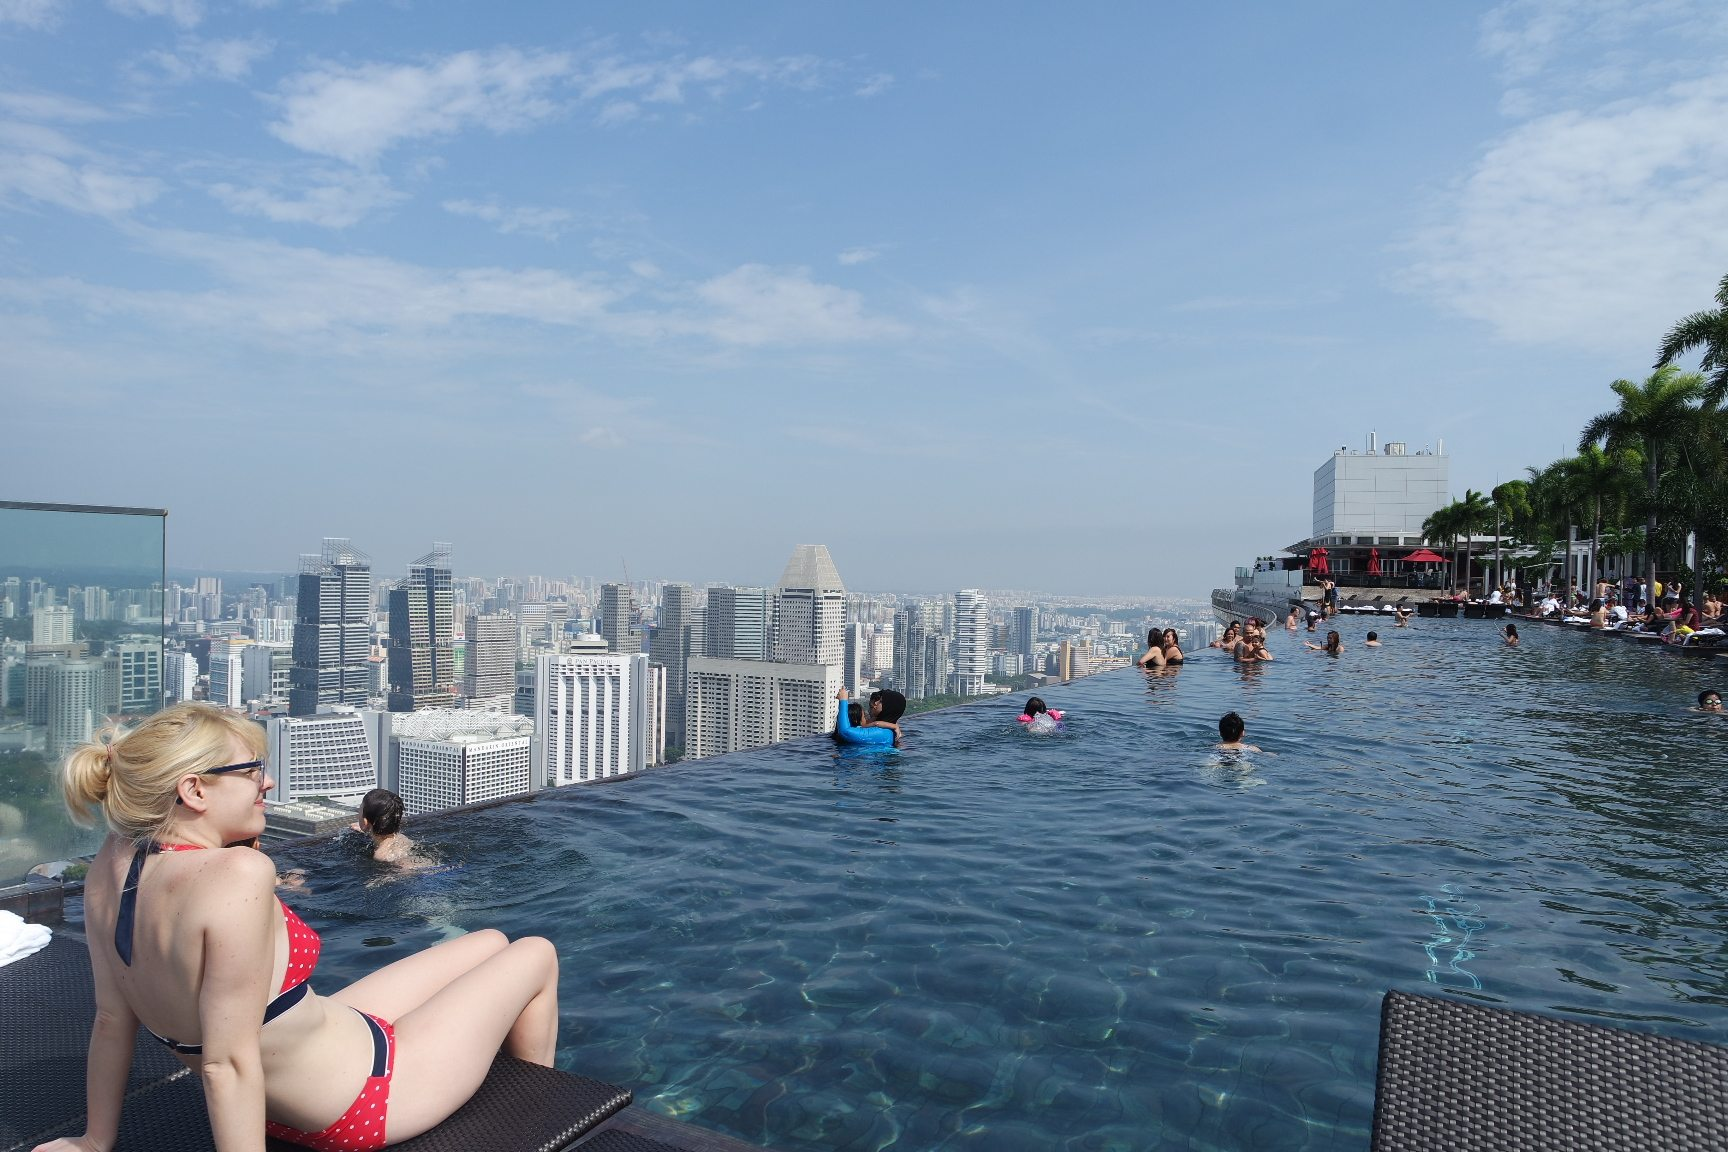 Marina Bay Sands World S Largest Rooftop Infinity Pool Lamyerda